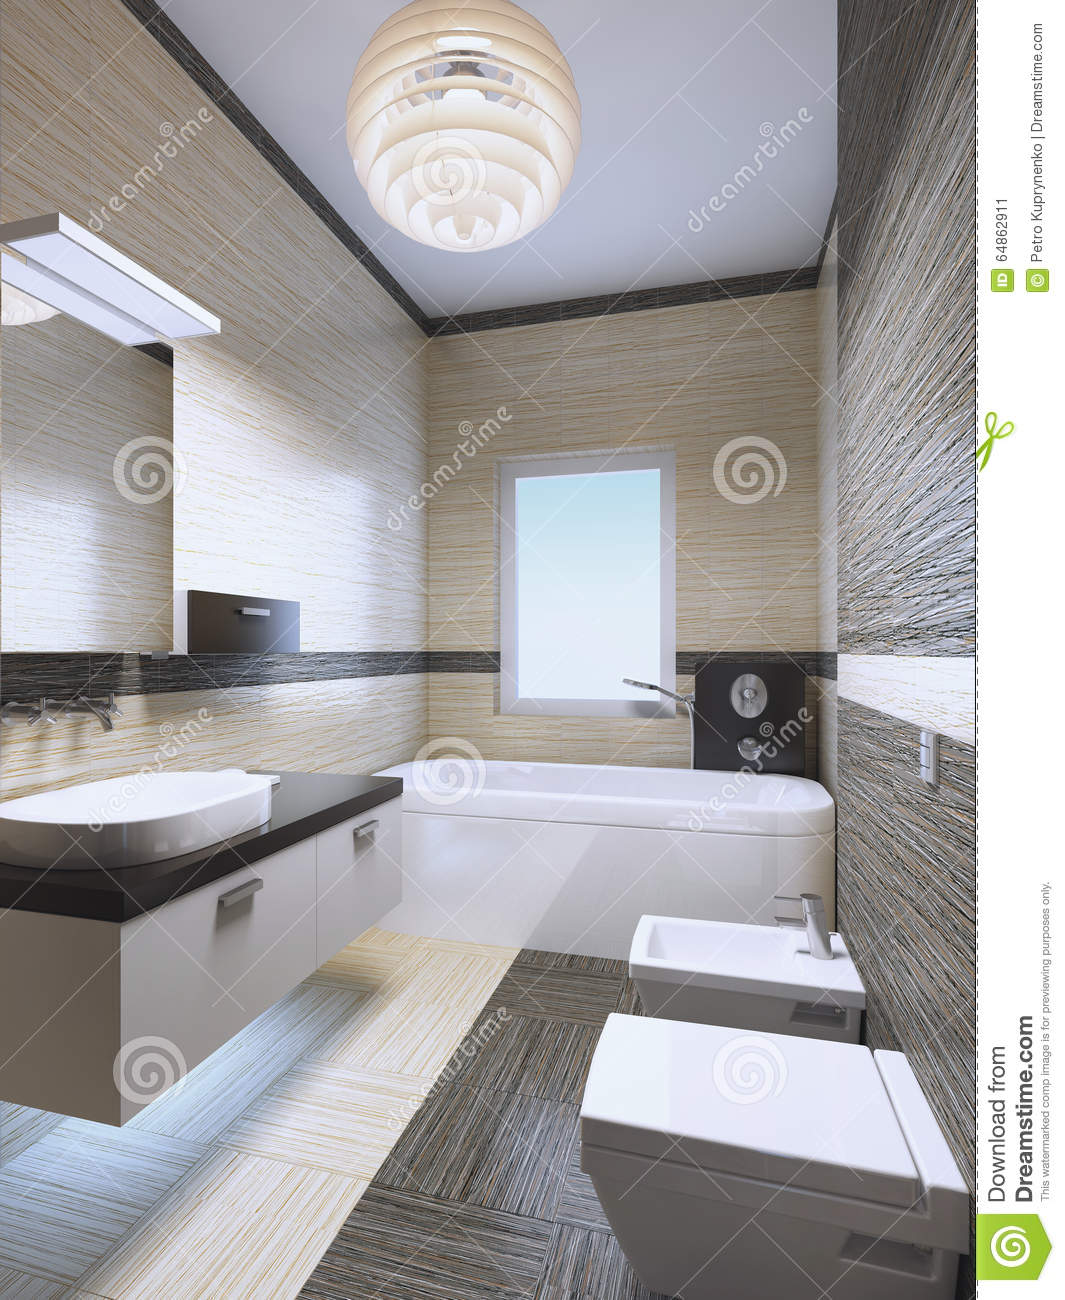 Bright Expensive Bathroom With Neon Lights Stock Photo